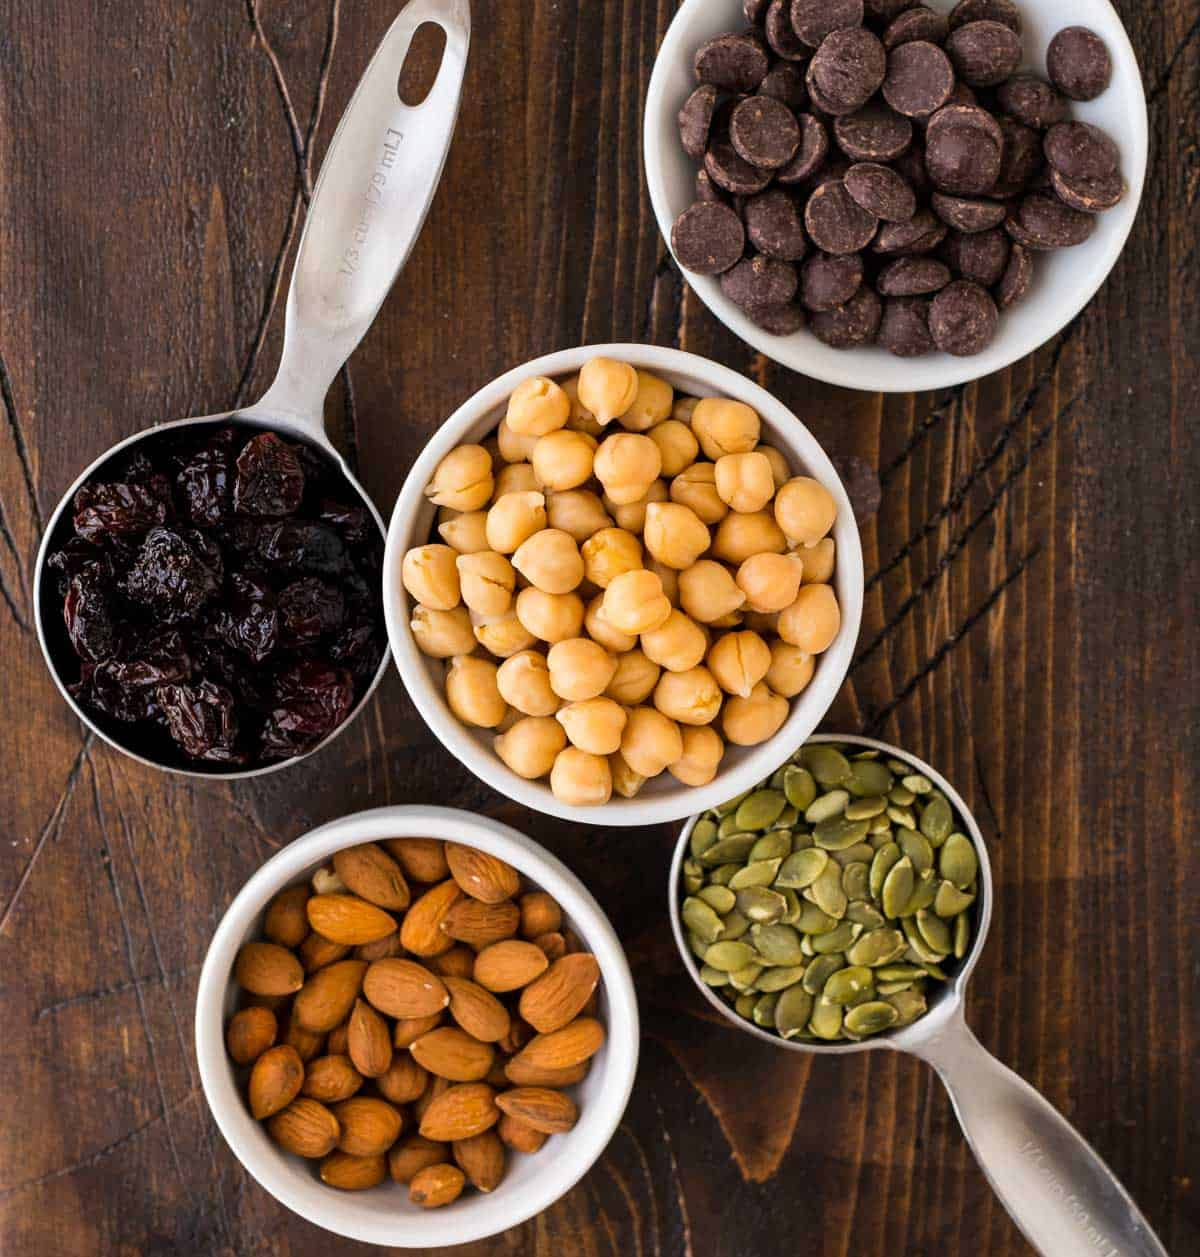 Roasted Chickpea Snack Mix. Make this easy, high-protein recipe for your next snack attack! Sweet roasted chickpeas with cinnamon are mixed with dried cherries, almonds, pumpkin seeds, and dark chocolate for a delicious treat.